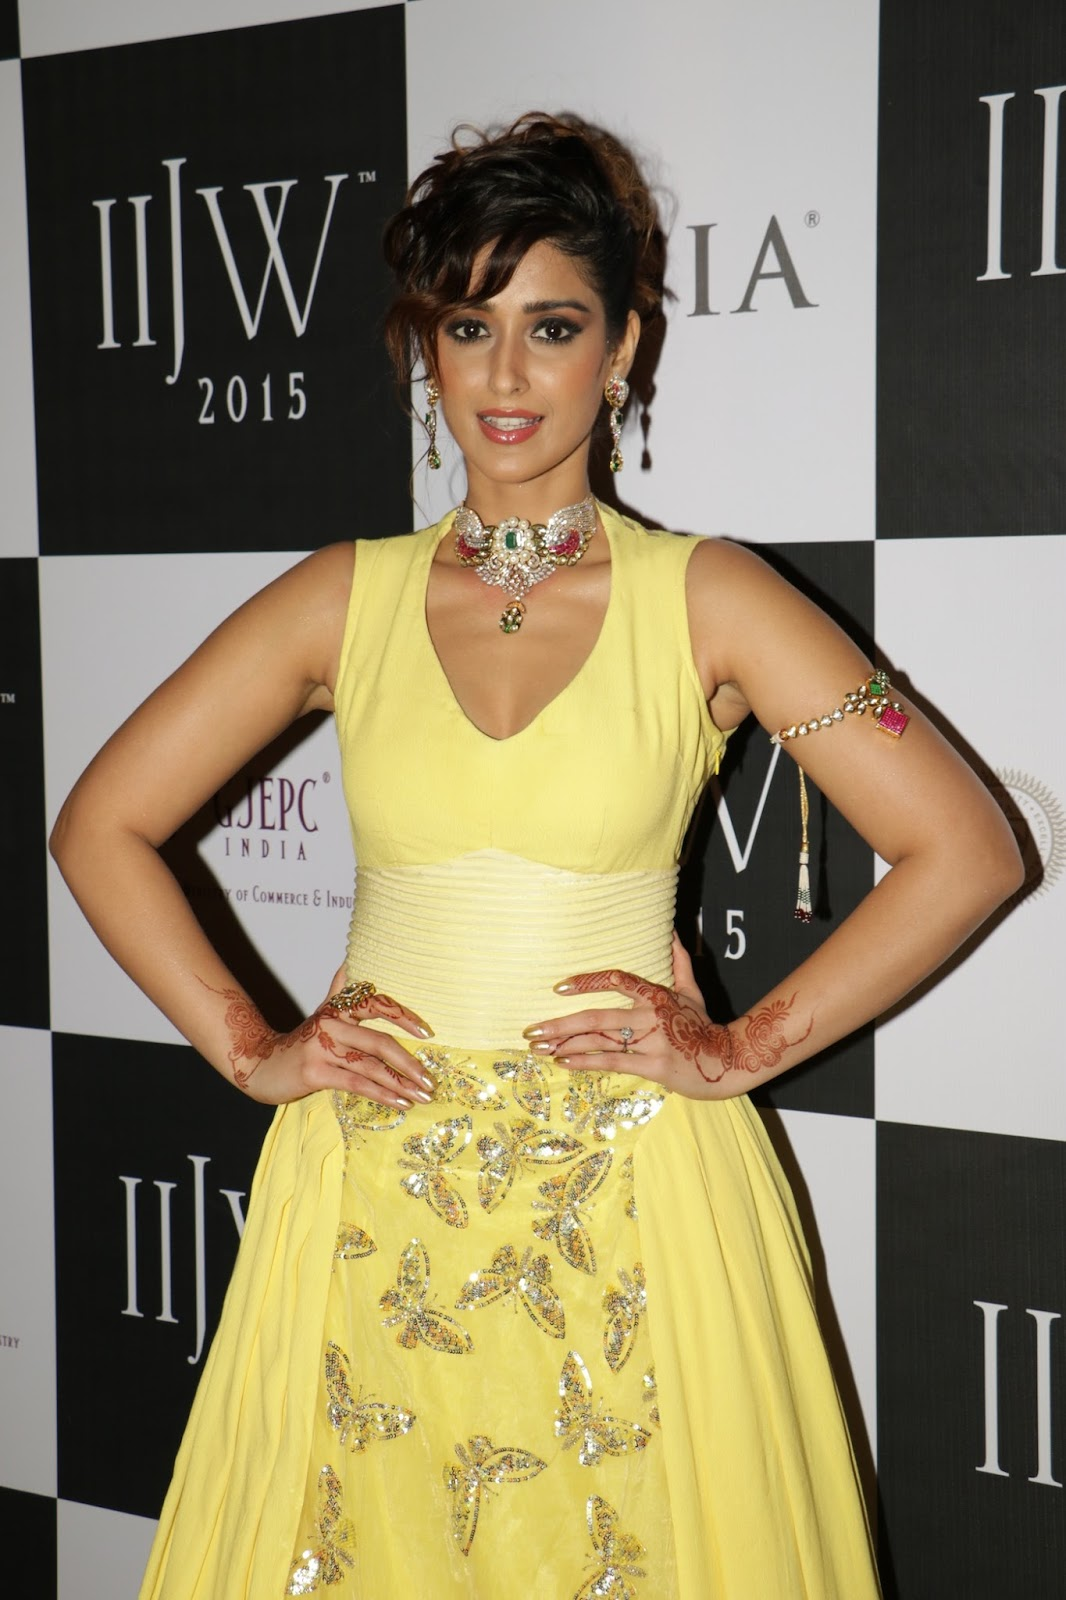 Ileana Ramp Walk Stills at IIJW 2015-HQ-Photo-11